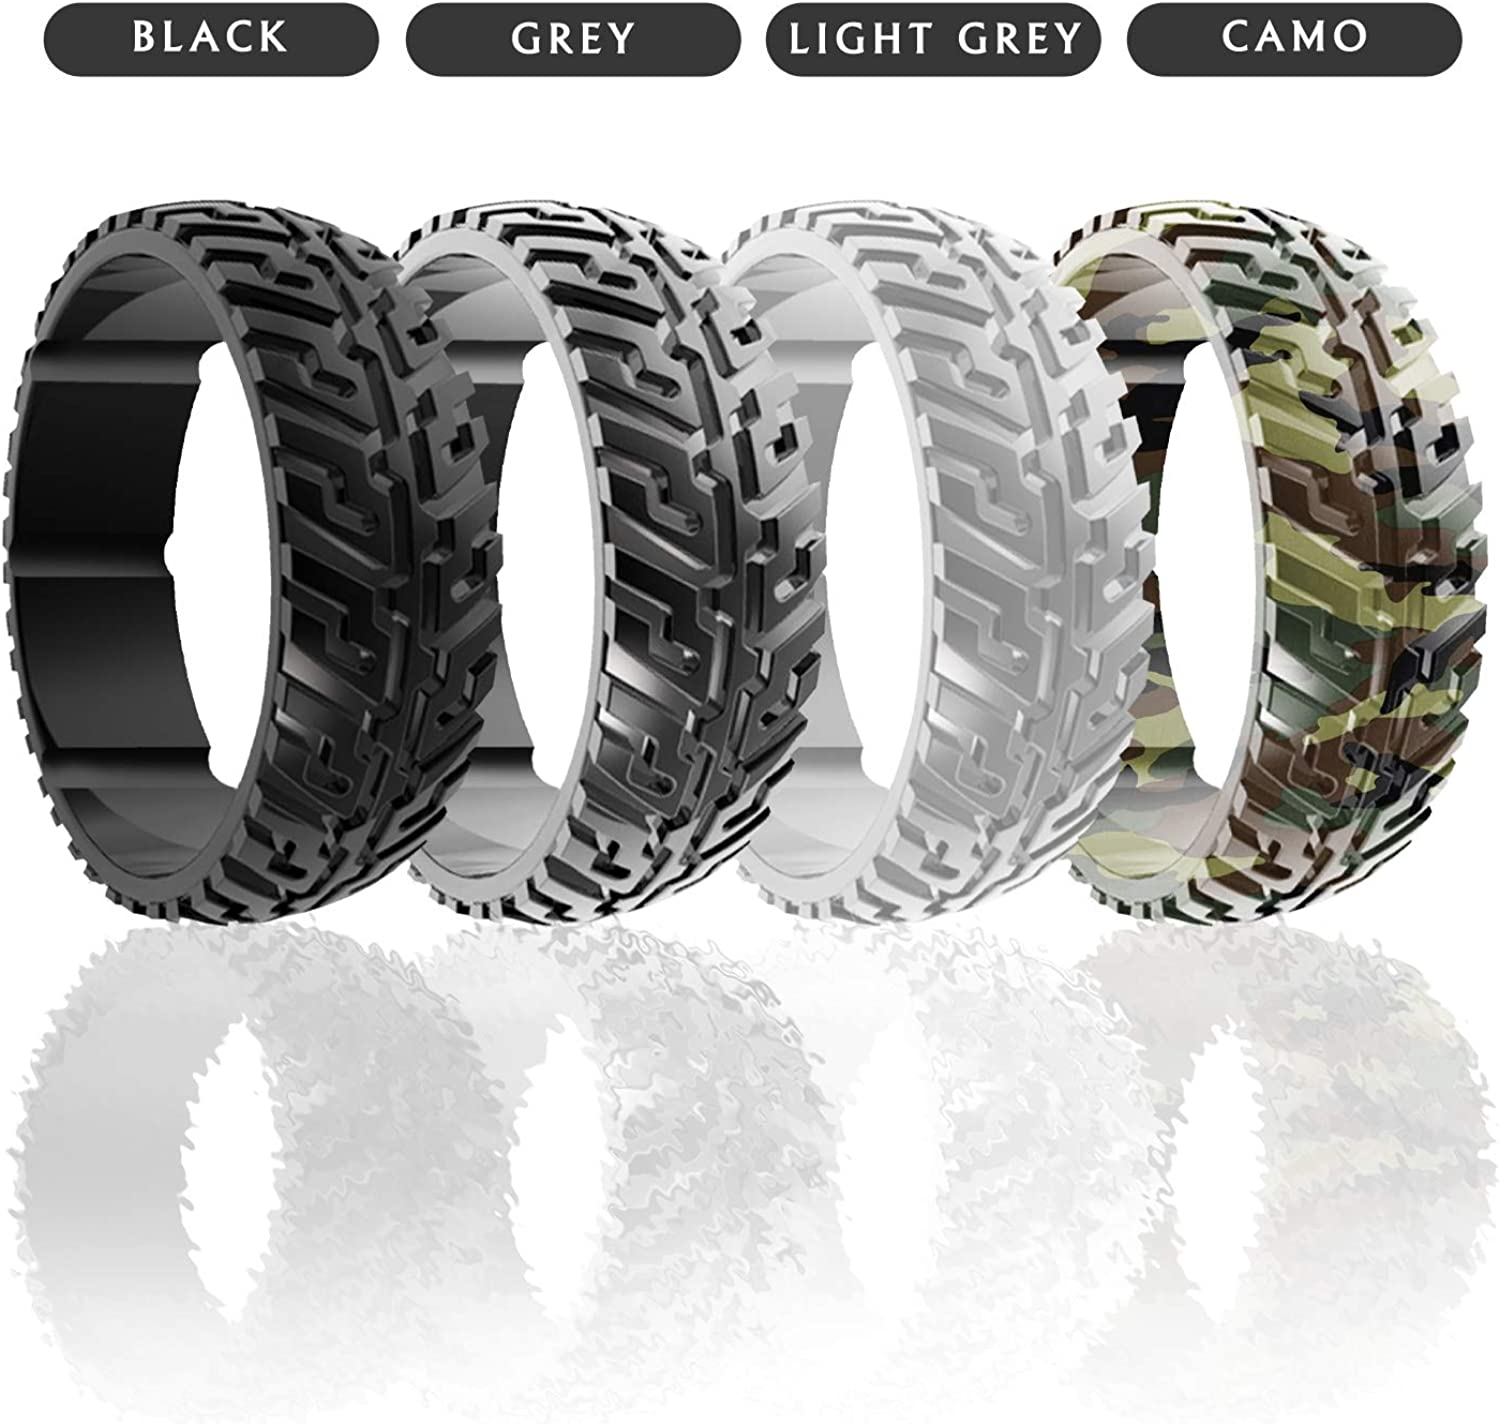 8.7 mm Wide Silicone Rings for Men Silicone Rings Breathable Silicone Wedding Bands with Groove for Protection from Extreme Conditions Tire Tread Design Rubber Wedding Bands for Men